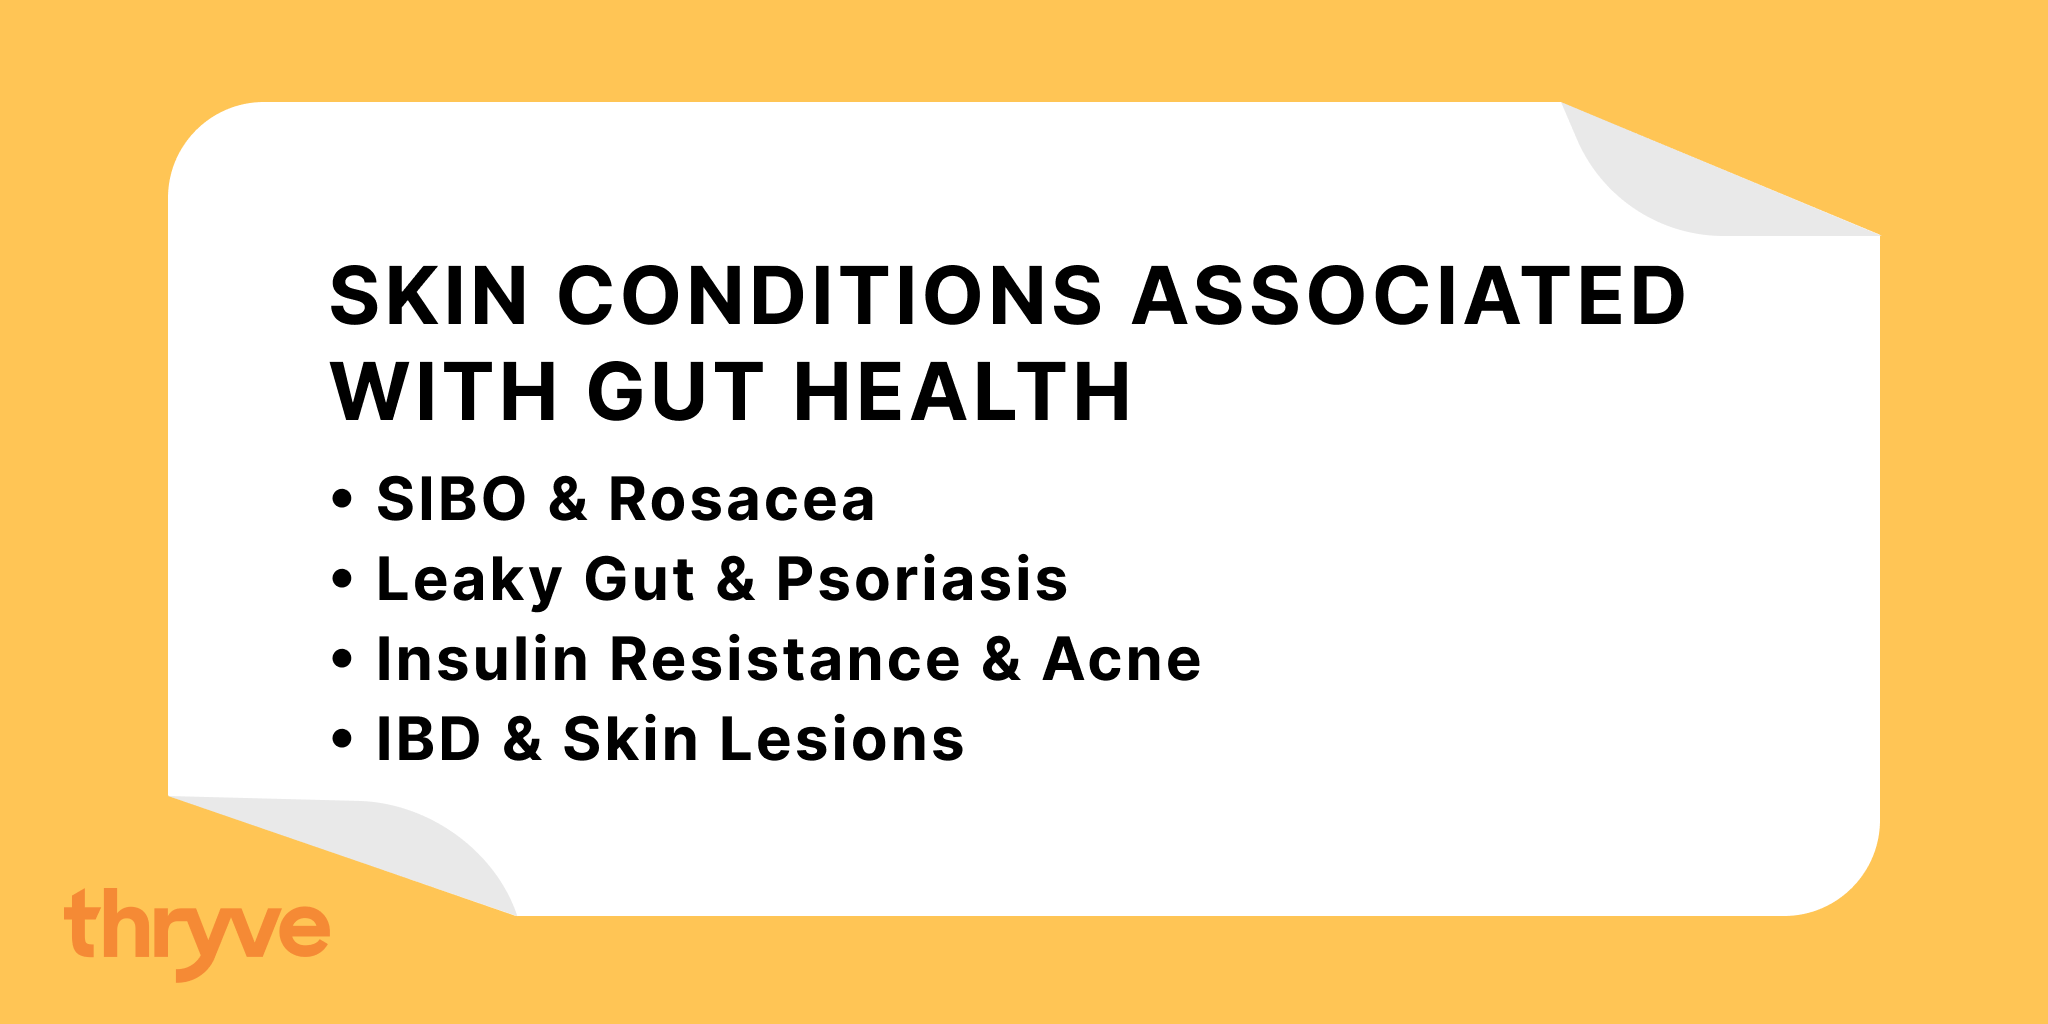 gut-skin axis skin and gut health